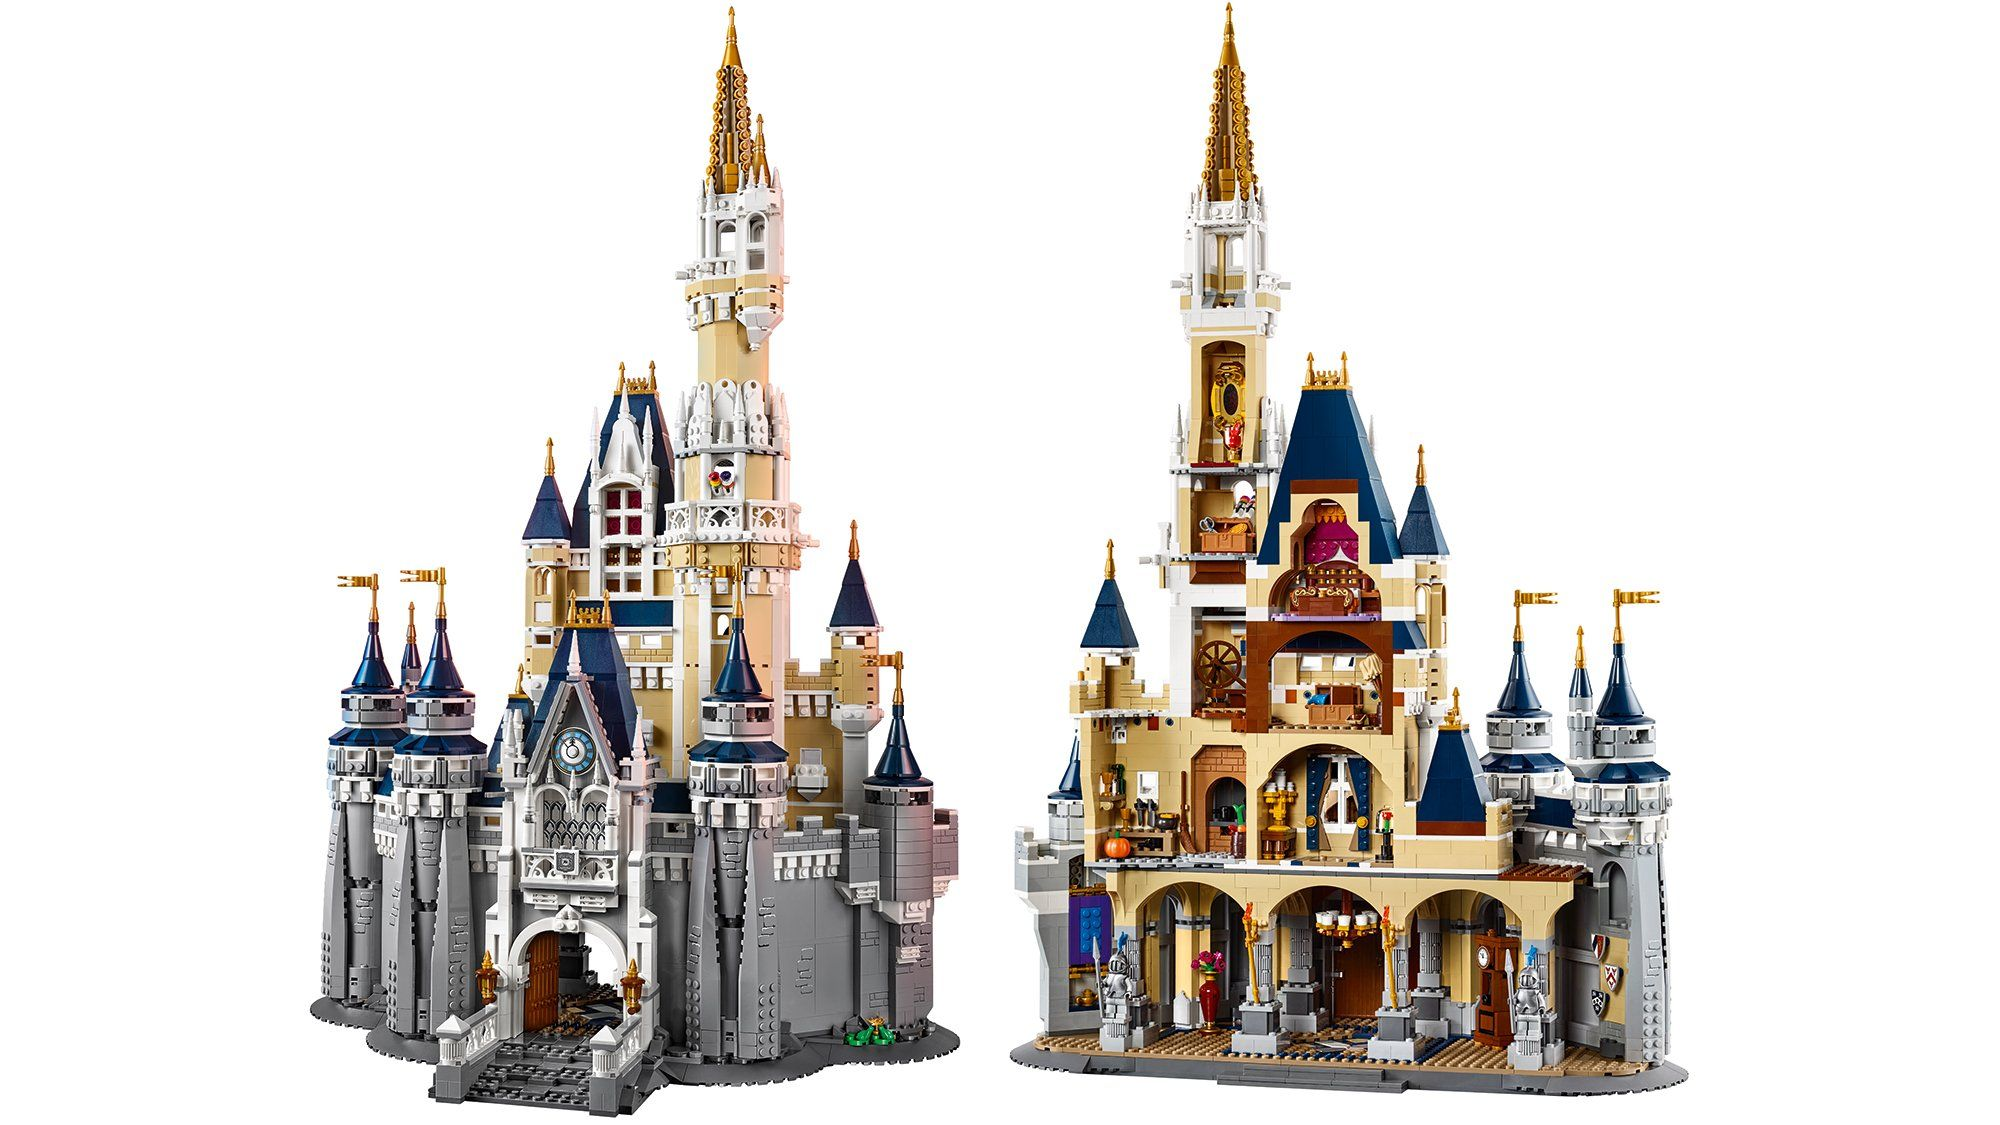 Gizmodo: Lego's new 4000-piece Disney Castle is cheaper than taking your kids to Walt Disney World  https://t.co/ZR7ricTzwV